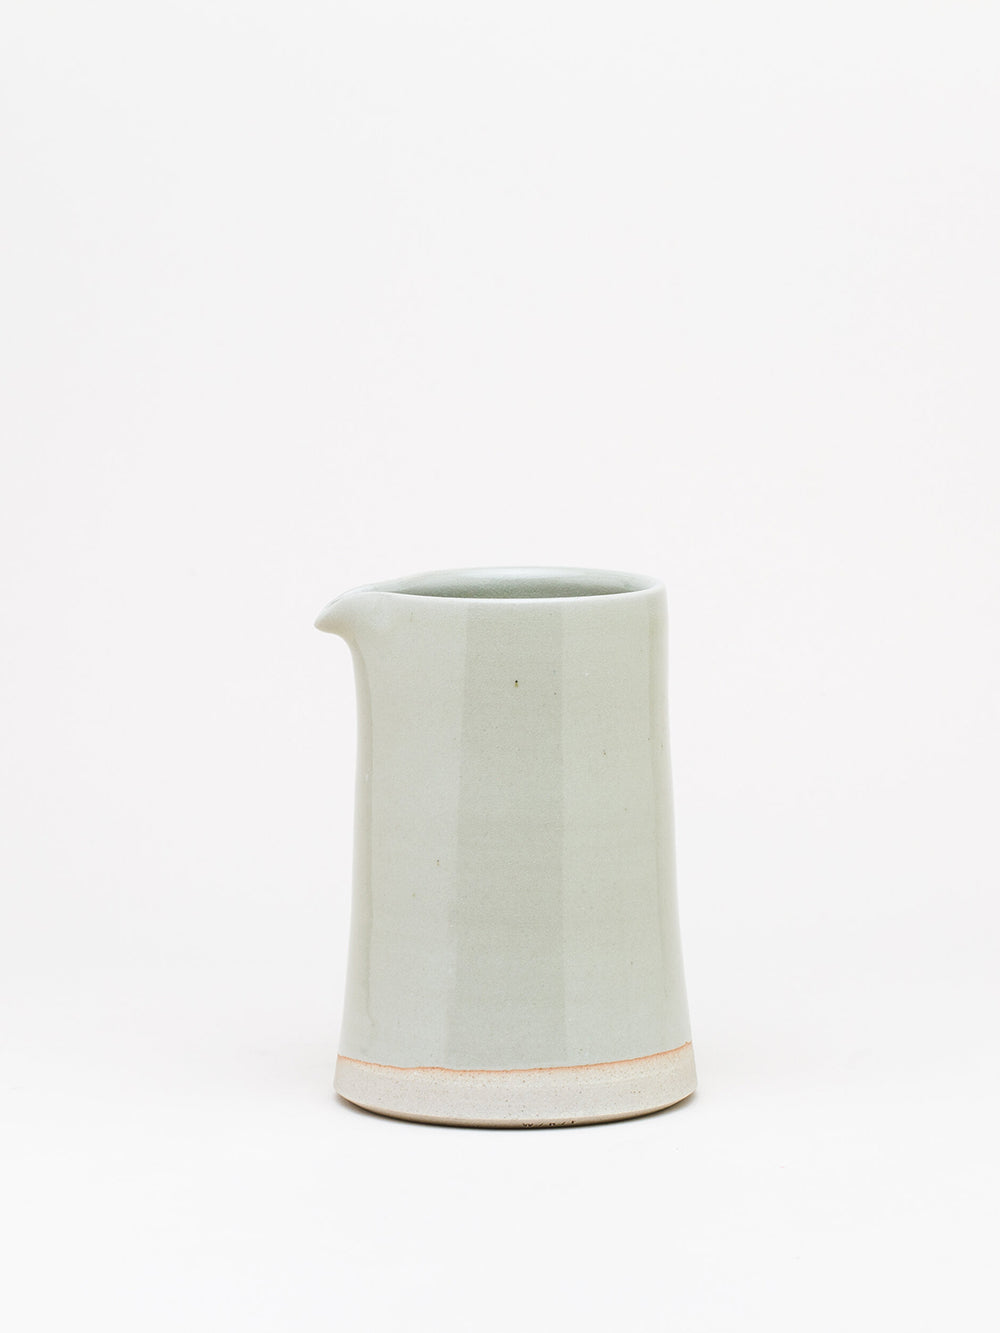 wrf small pitcher in mist